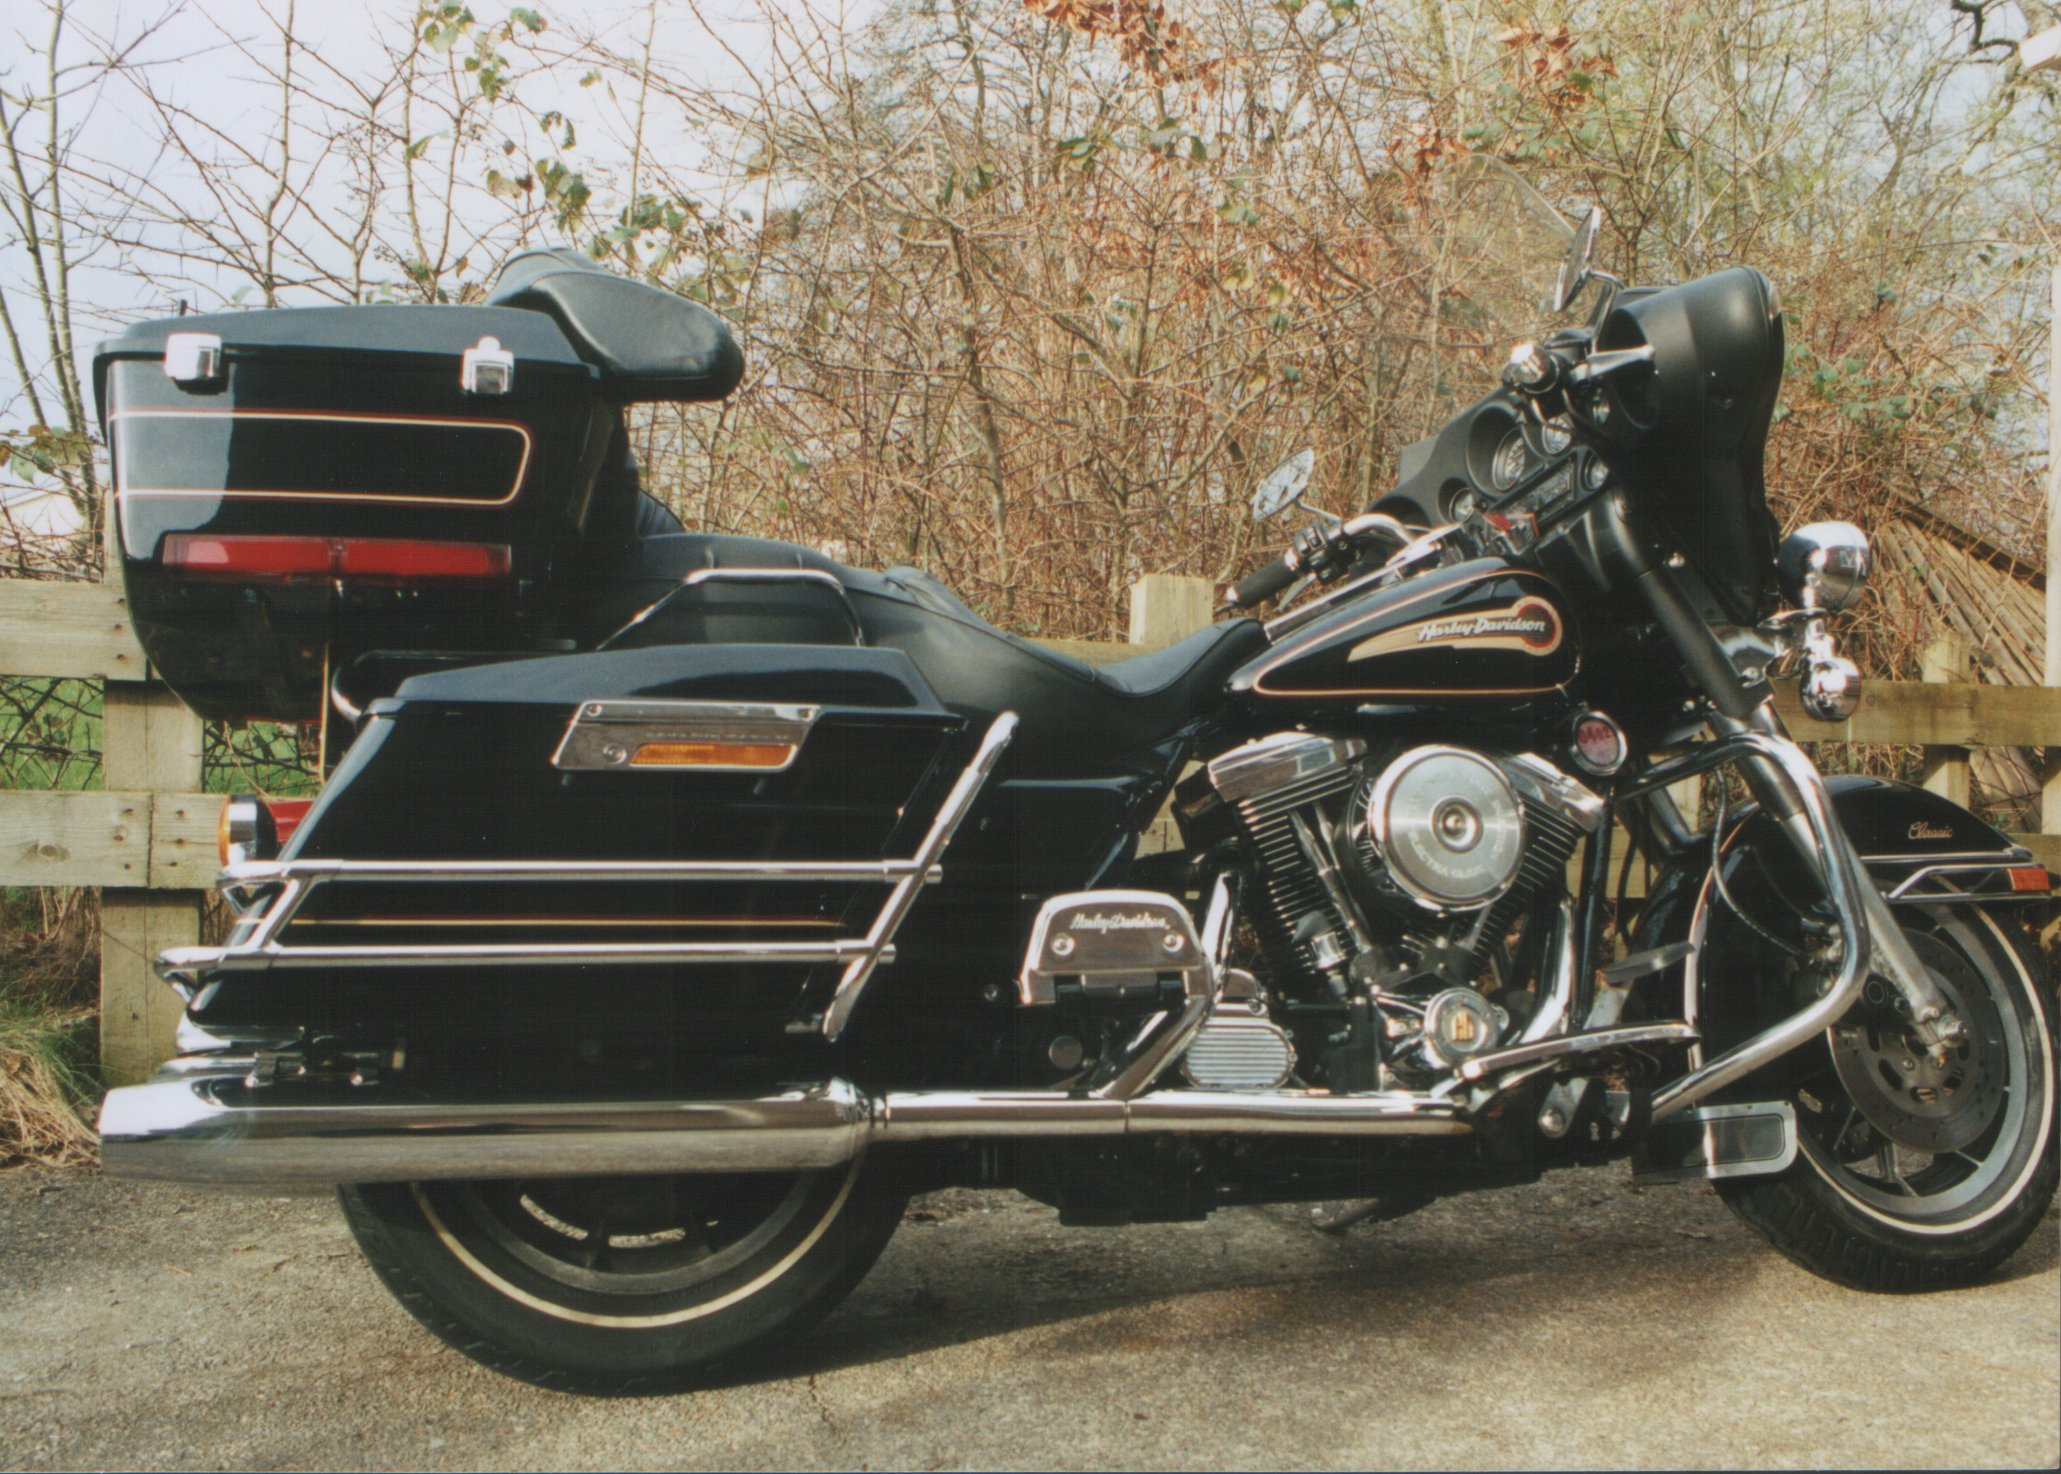 Harley-Davidson FLHTC 1340 Electra Glide Classic (reduced effect) #3